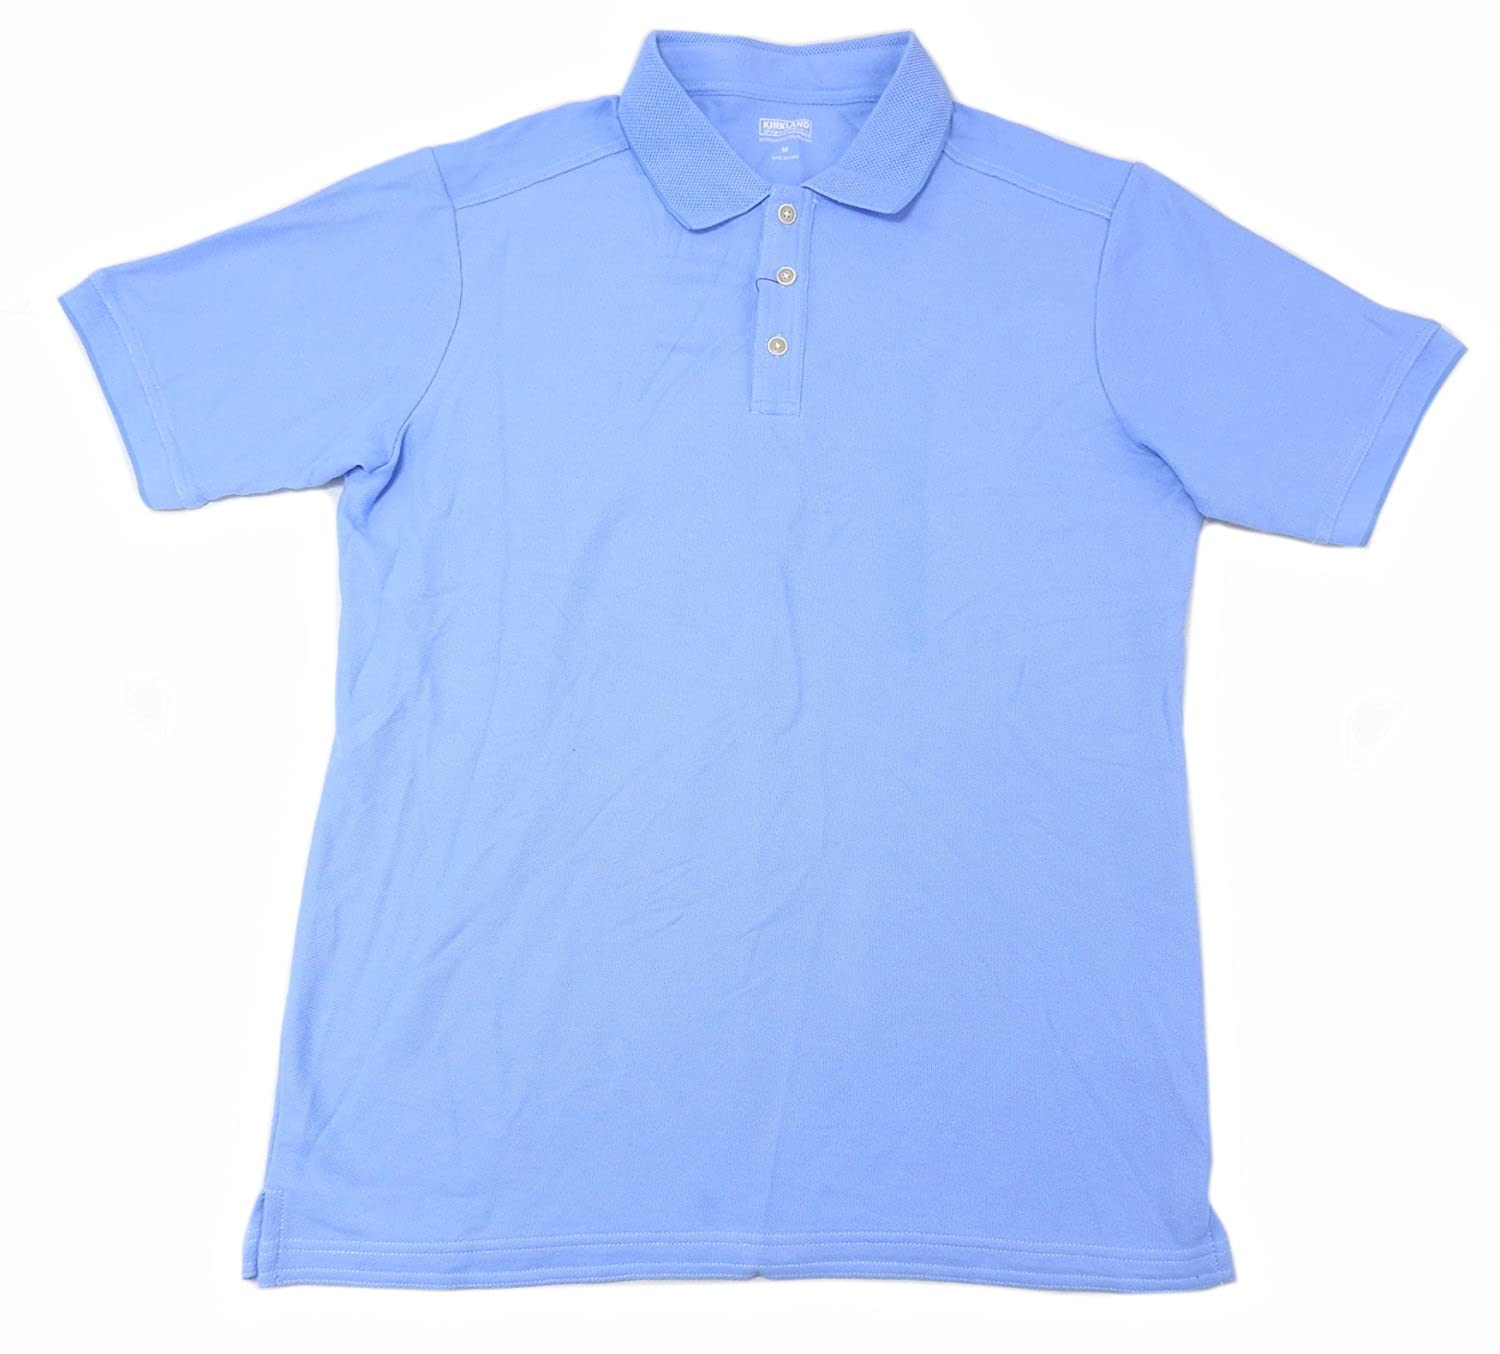 Light Blue Kirkland Signature Mens Medium Pique Polo